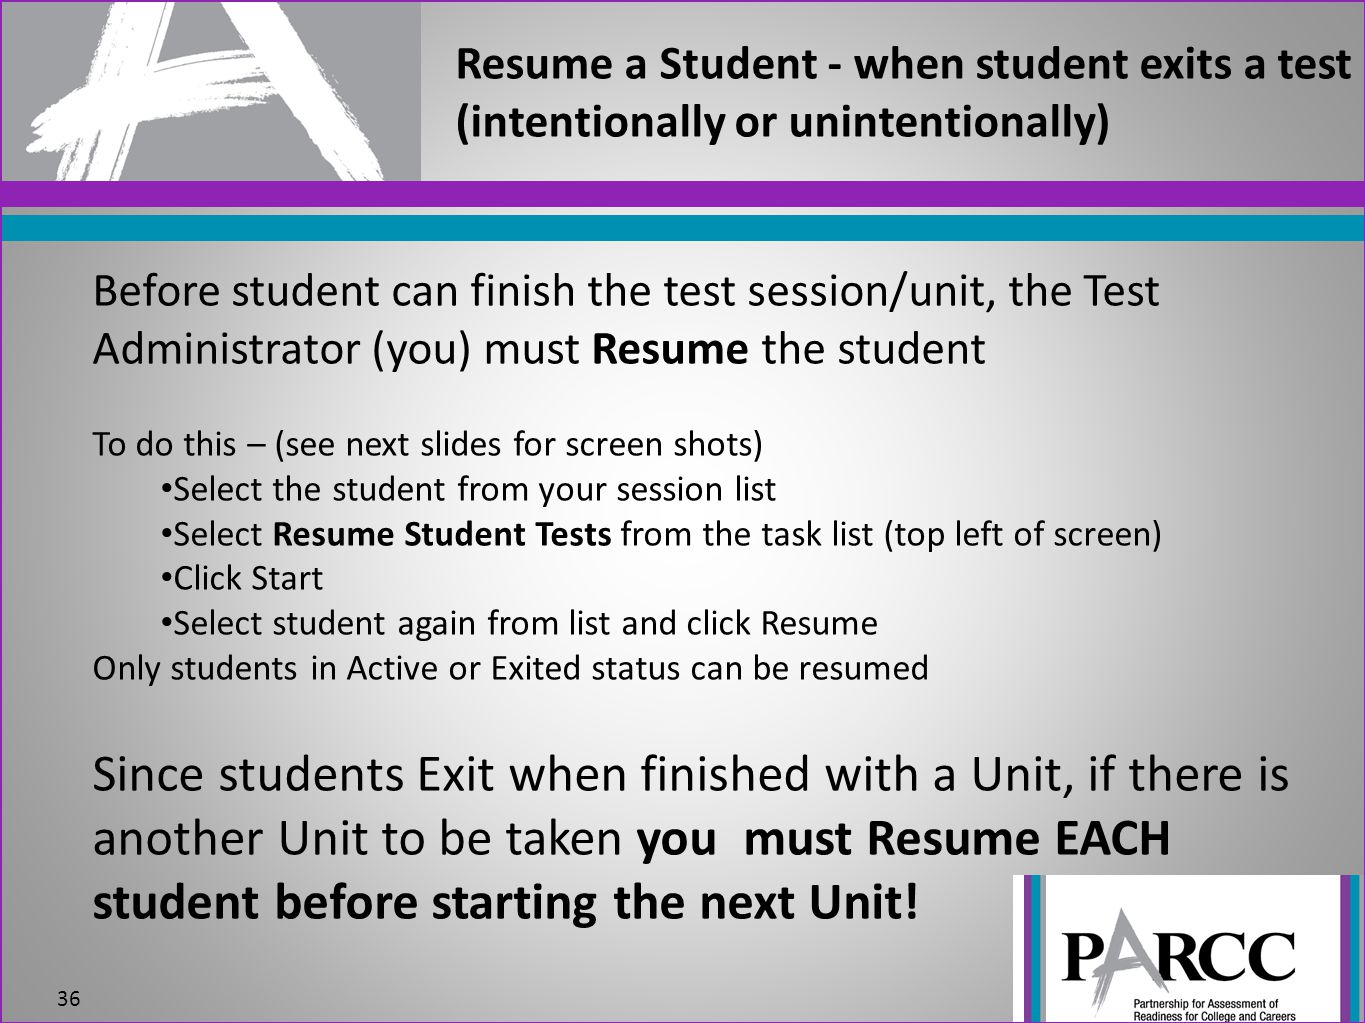 Resume a Student - when student exits a test (intentionally or unintentionally) 36 Before student can finish the test session/unit, the Test Administrator (you) must Resume the student To do this – (see next slides for screen shots) Select the student from your session list Select Resume Student Tests from the task list (top left of screen) Click Start Select student again from list and click Resume Only students in Active or Exited status can be resumed Since students Exit when finished with a Unit, if there is another Unit to be taken you must Resume EACH student before starting the next Unit!